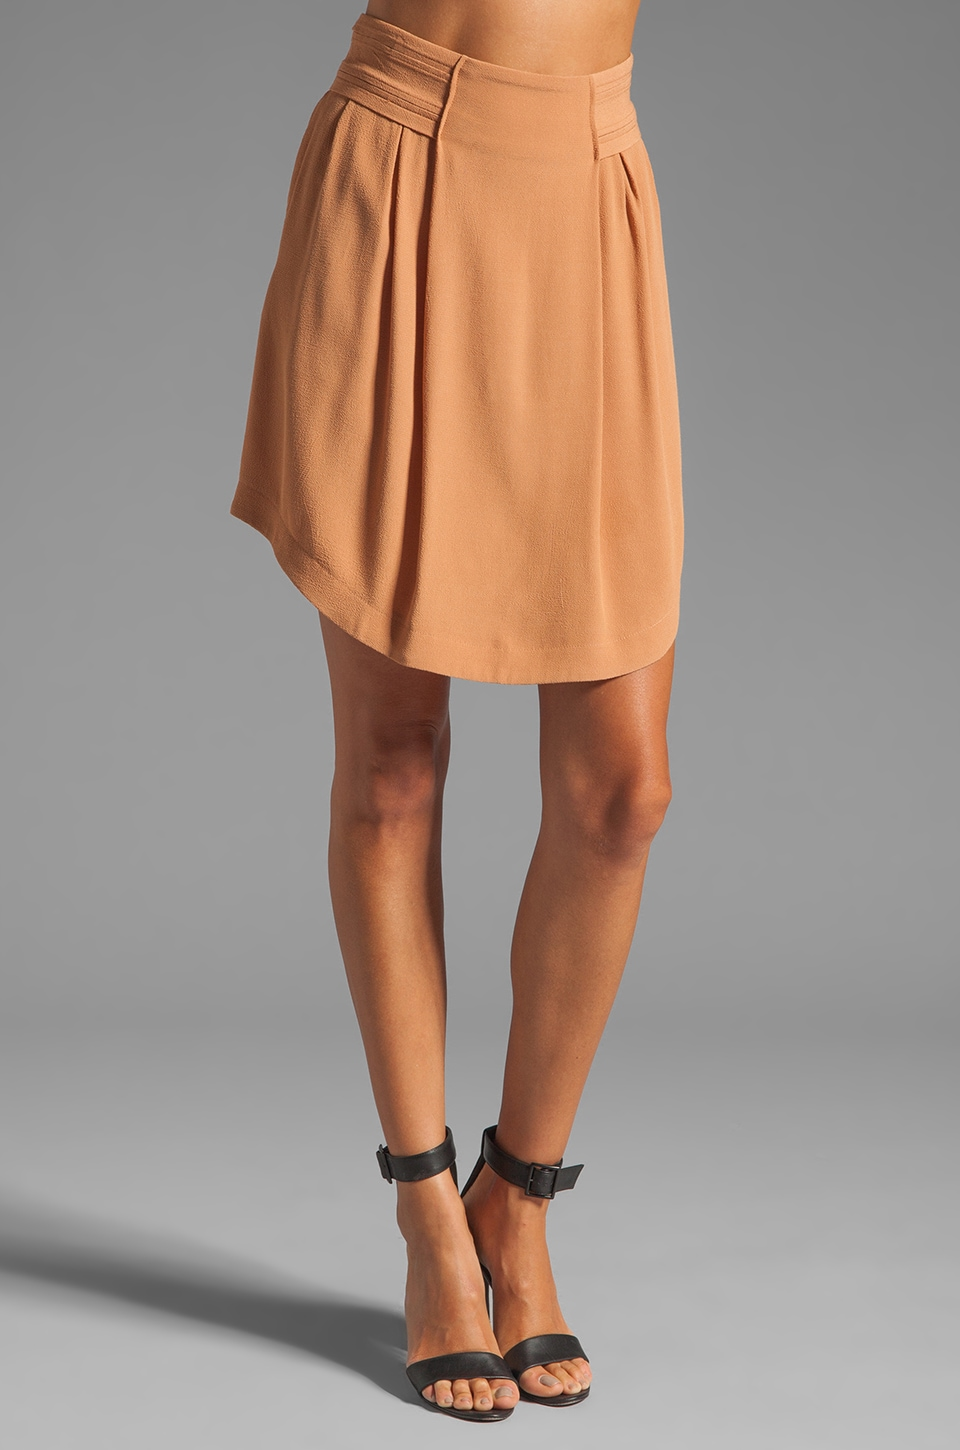 See By Chloe Front Pleat High Waisted Skirt in Medium Burnt